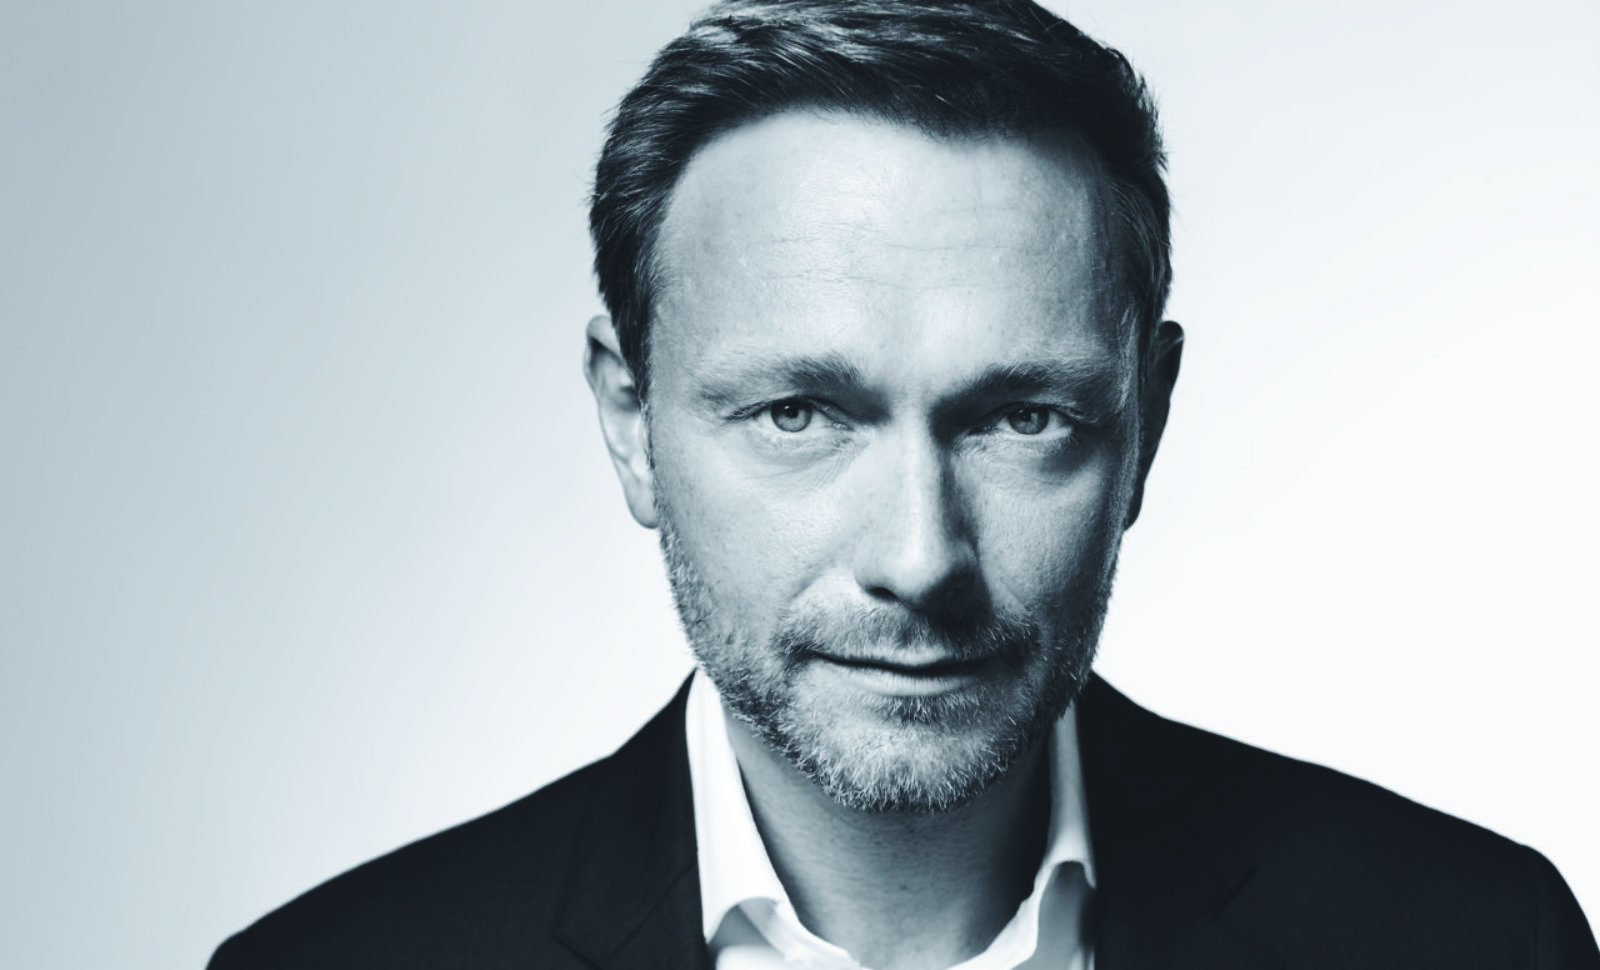 Christian Lindner als Speaker auf der Internet World EXPO 2018